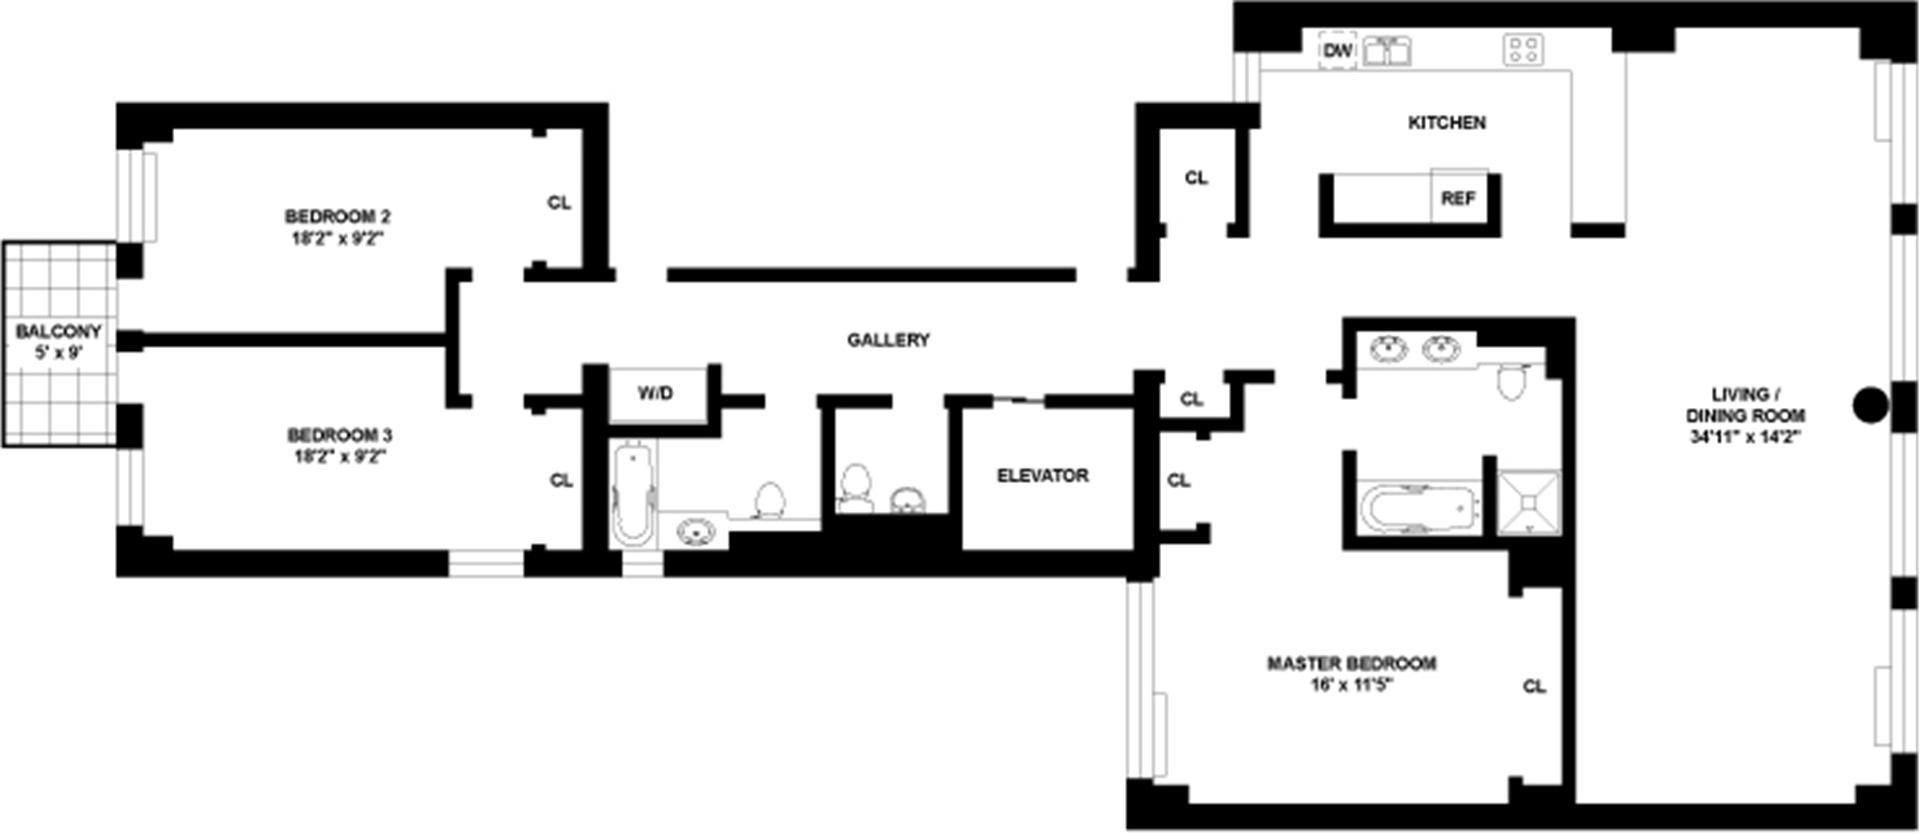 Floor plan of 330 East 57th Street, 330 East 57th St, 11FL - Sutton Area, New York